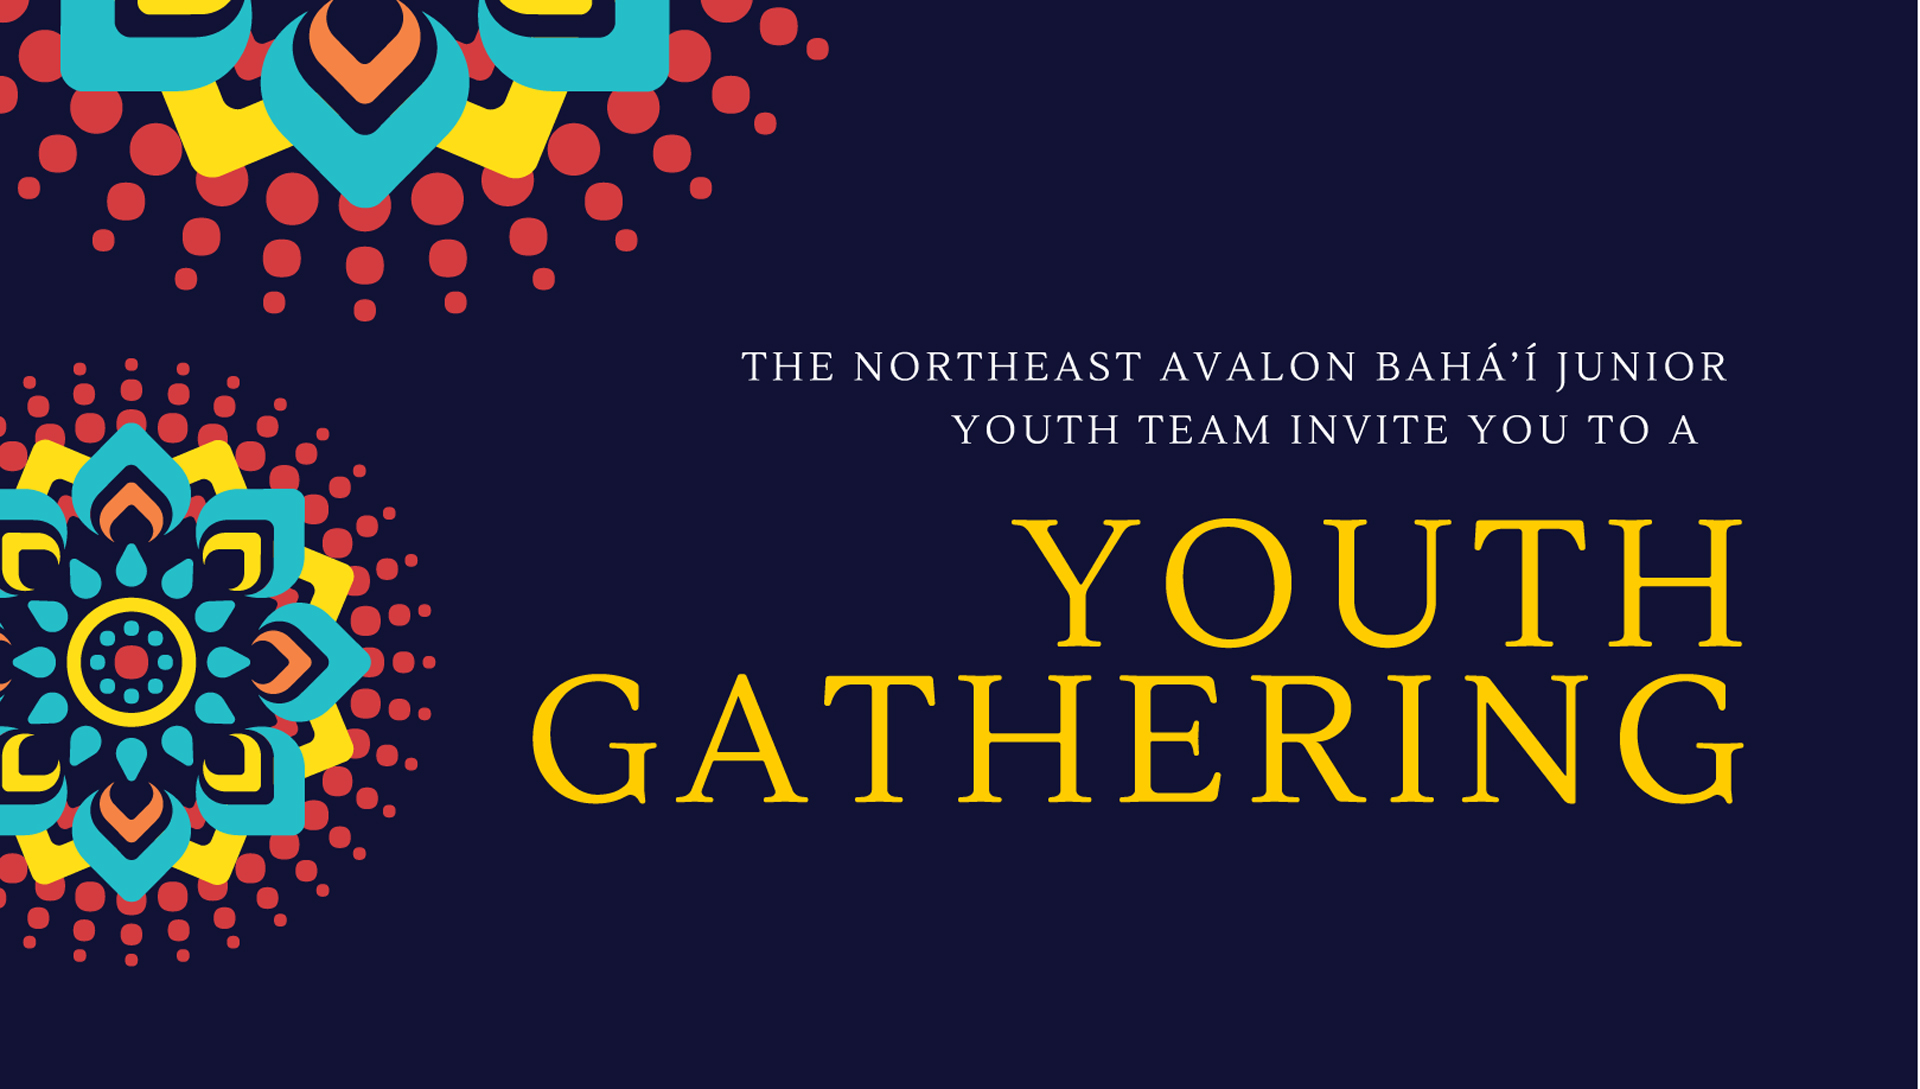 Youth Gathering, noon to 3 p.m. Sunday, July 8, at the Paul Reynolds Community Centre